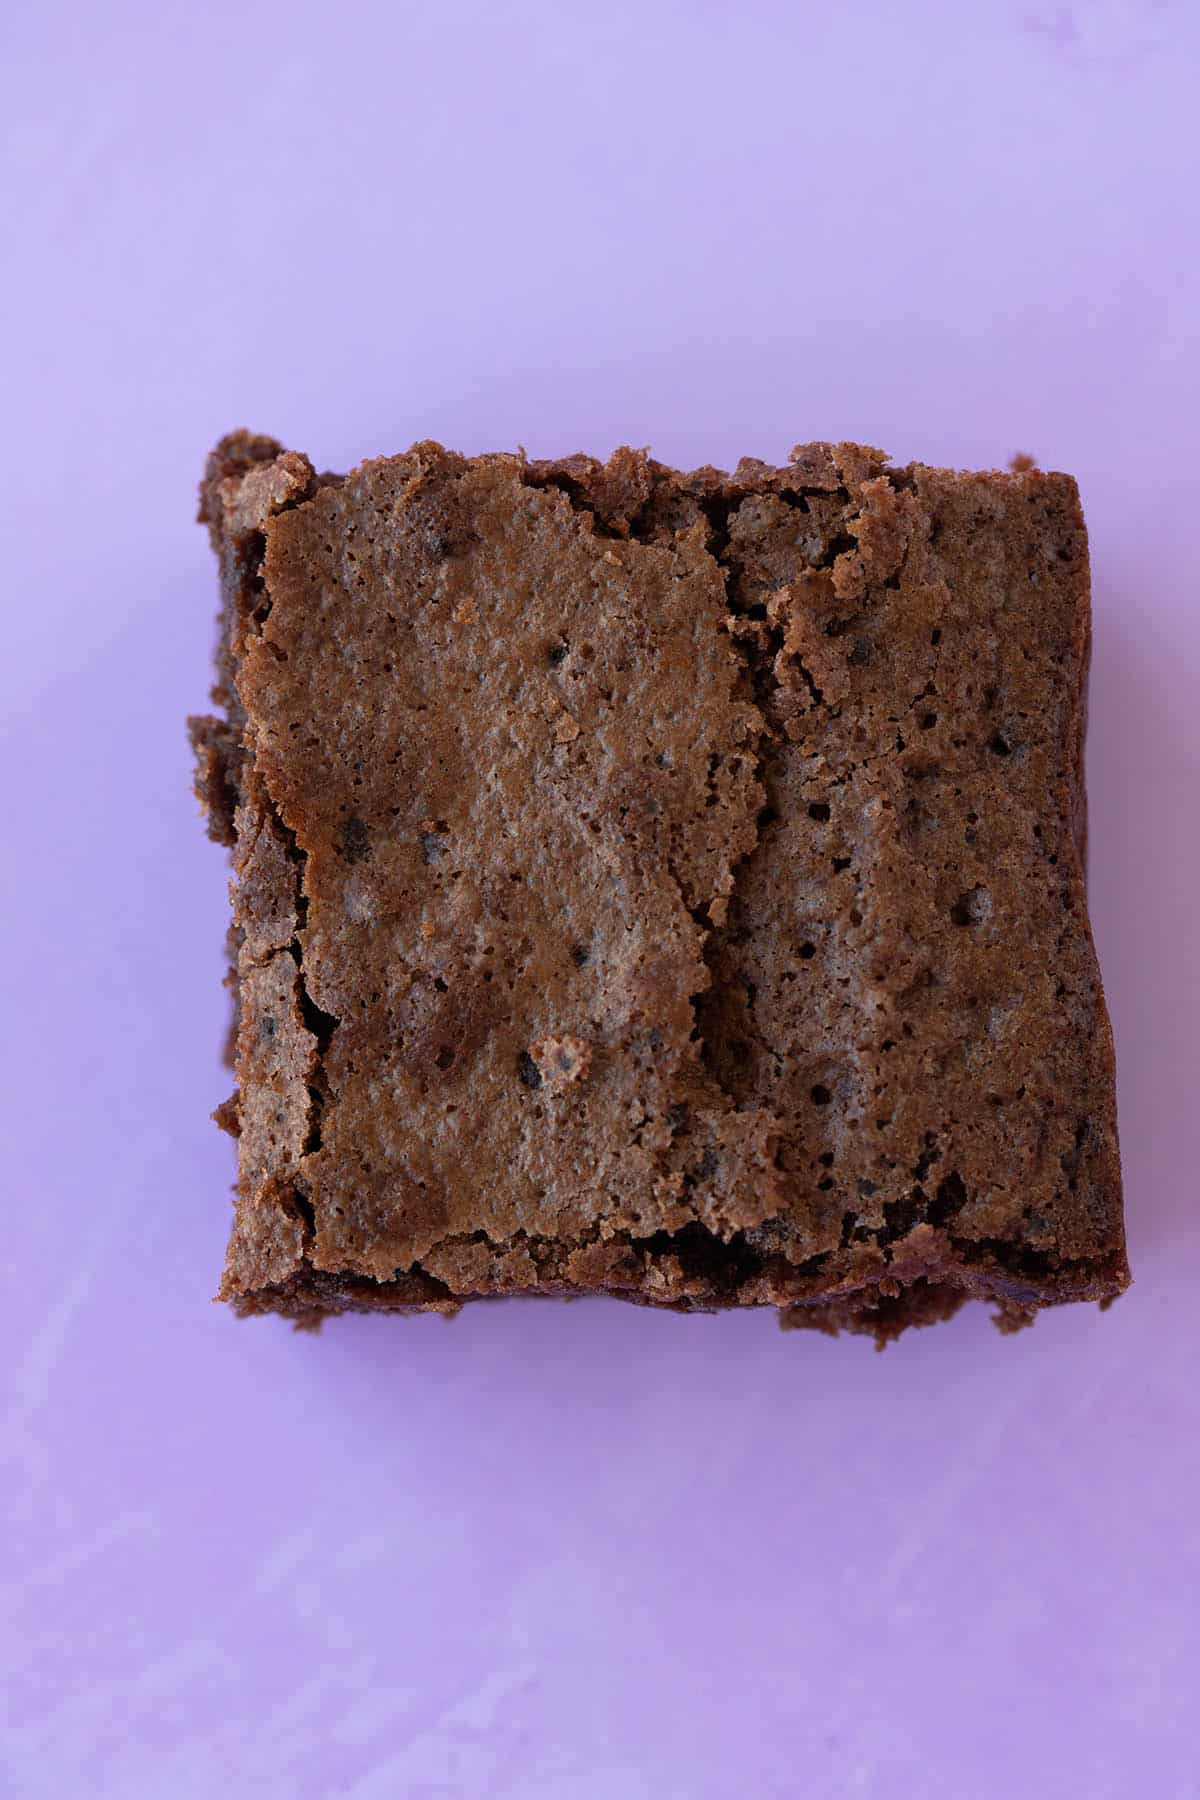 Close up of the crinkly top of a Cocoa Brownie